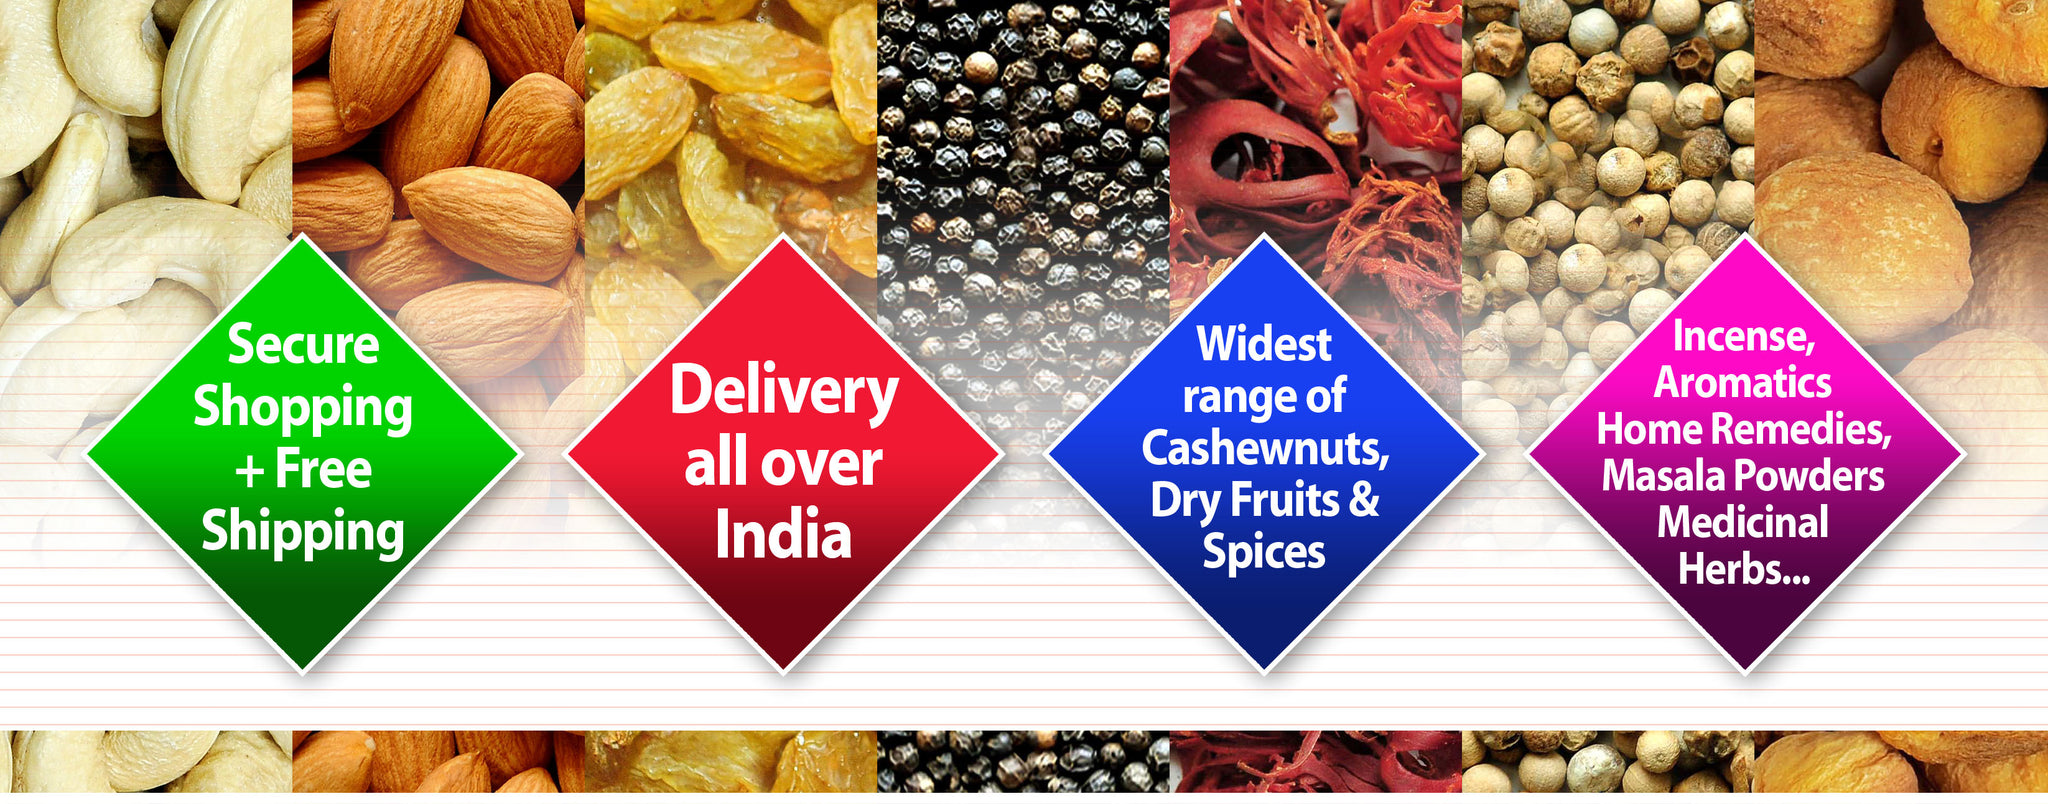 Buy Spices, Herbs, Dry Fruits and Cashew Nuts Online